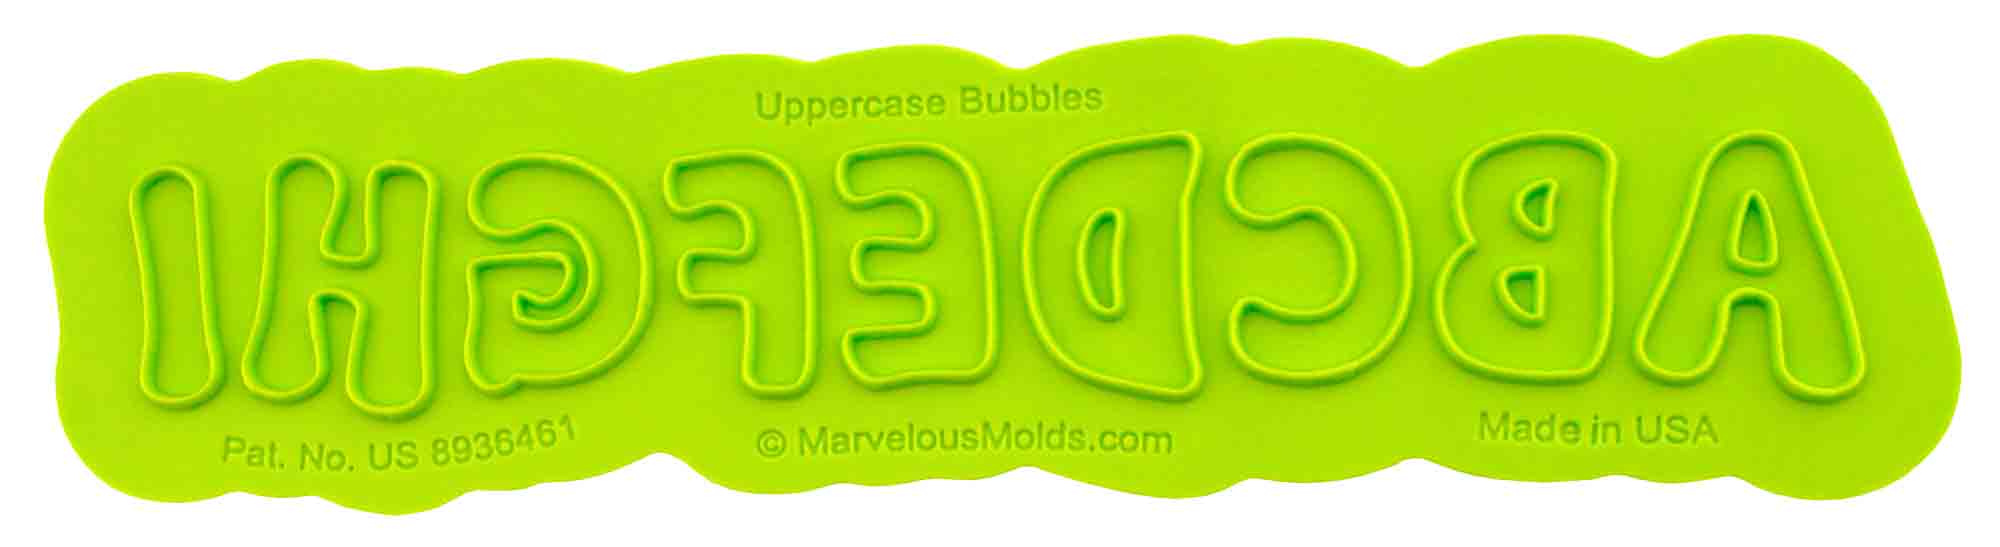 Bubble Uppercase Flexabet™